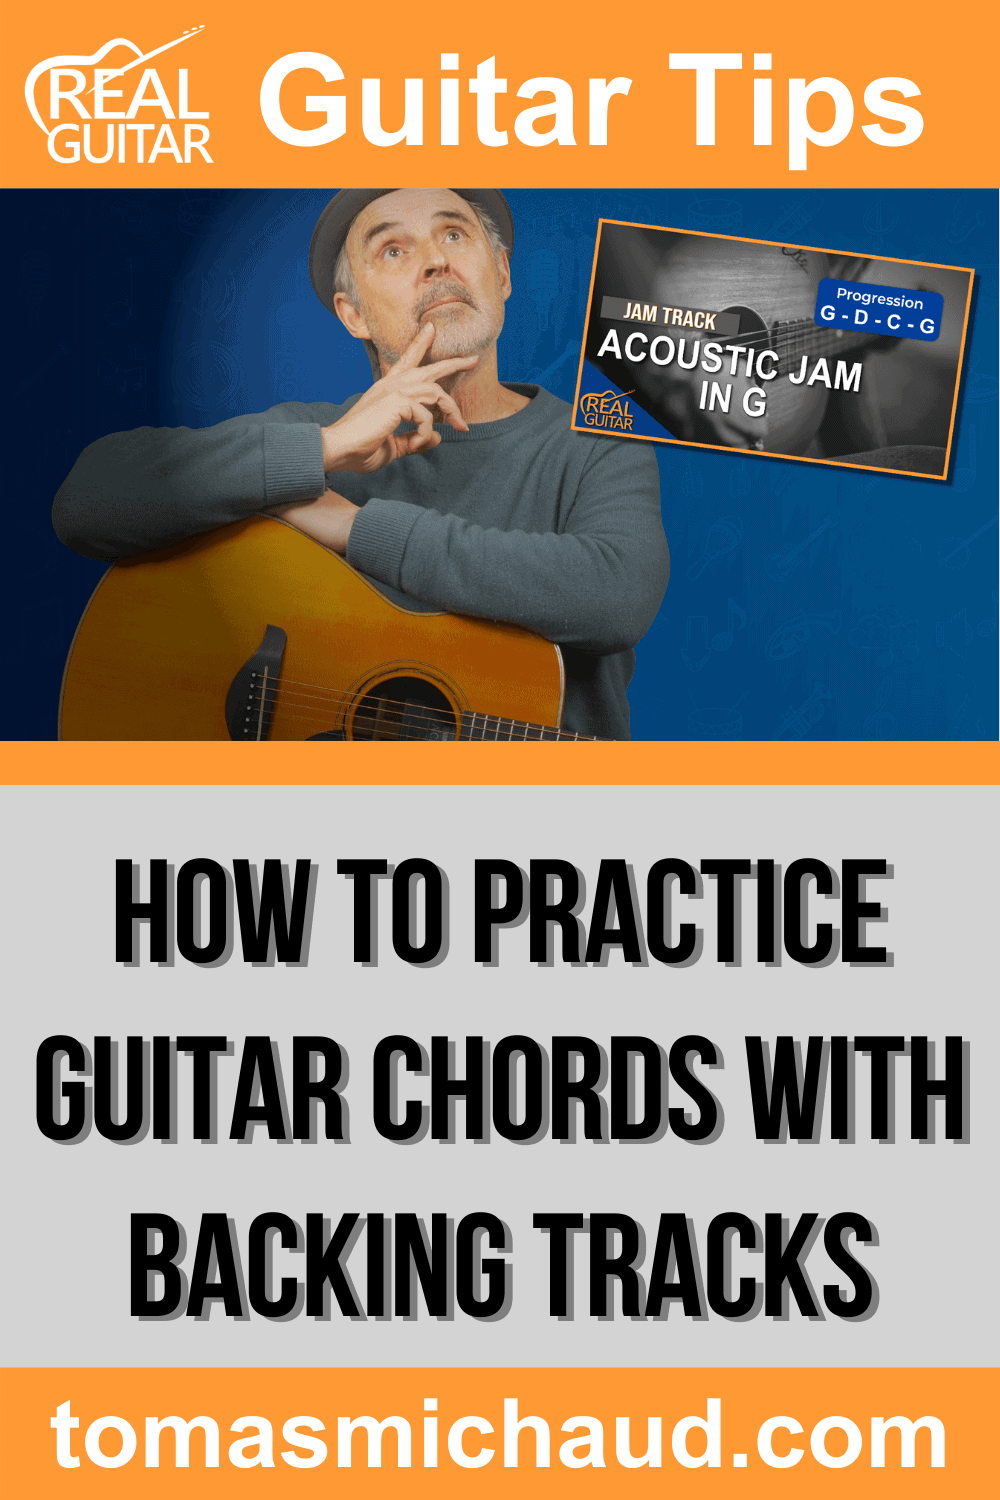 How To Practice Guitar Chords With Backing Tracks